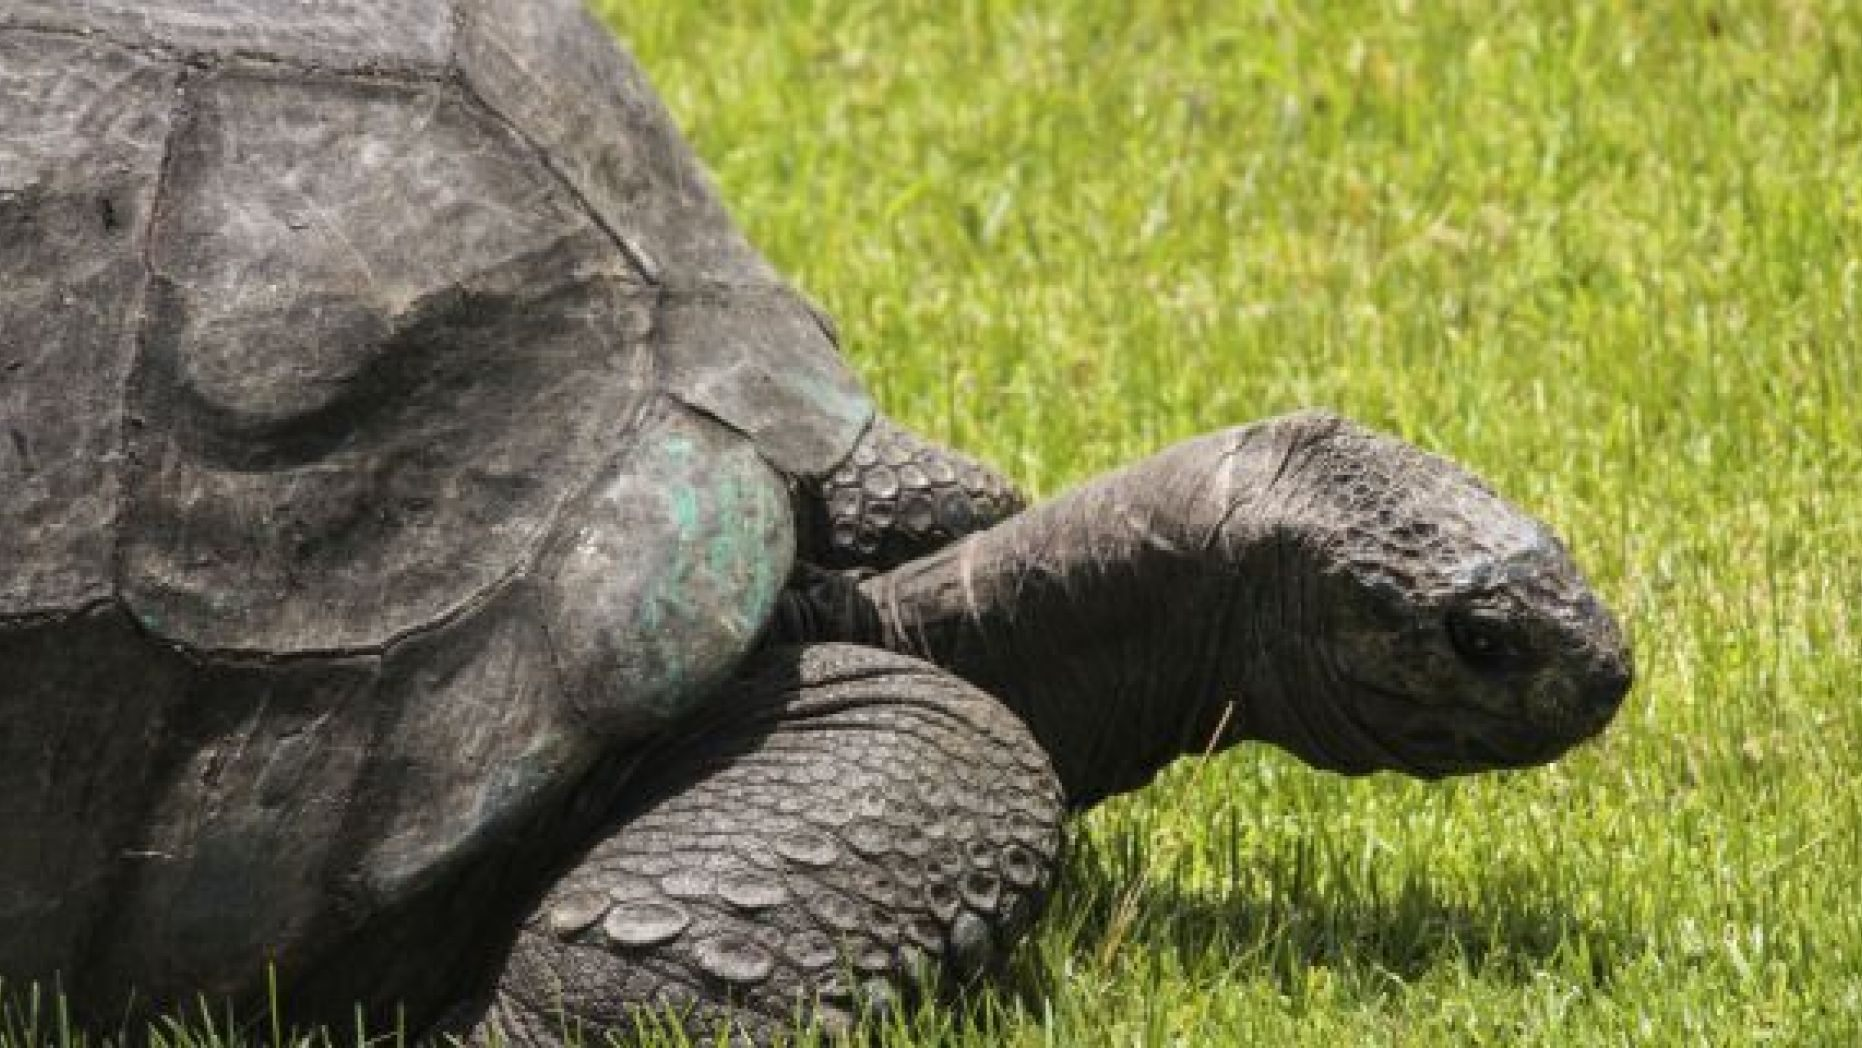 https://www.foxnews.com/science/the-fascinating-sex-life-of-jonathan-the-185-year-old-giant-tortoise